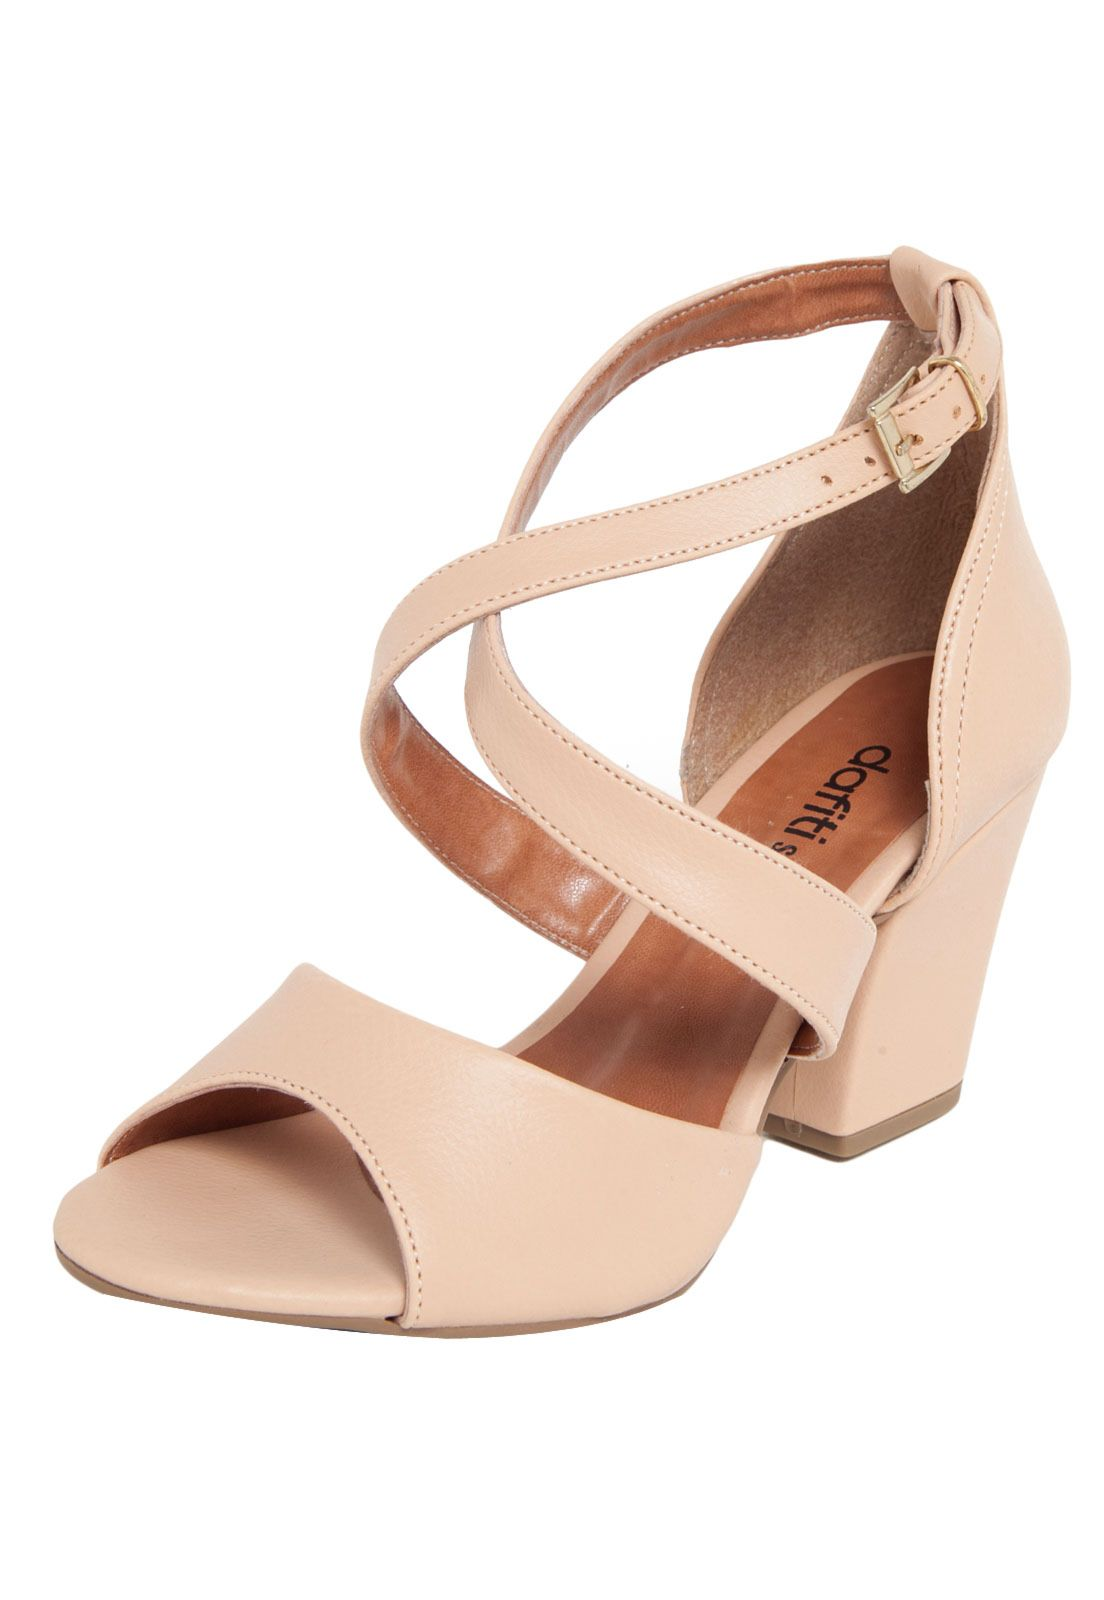 Sandália DAFITI SHOES Salto Grosso Nude - Marca DAFITI SHOES 8890205782cde